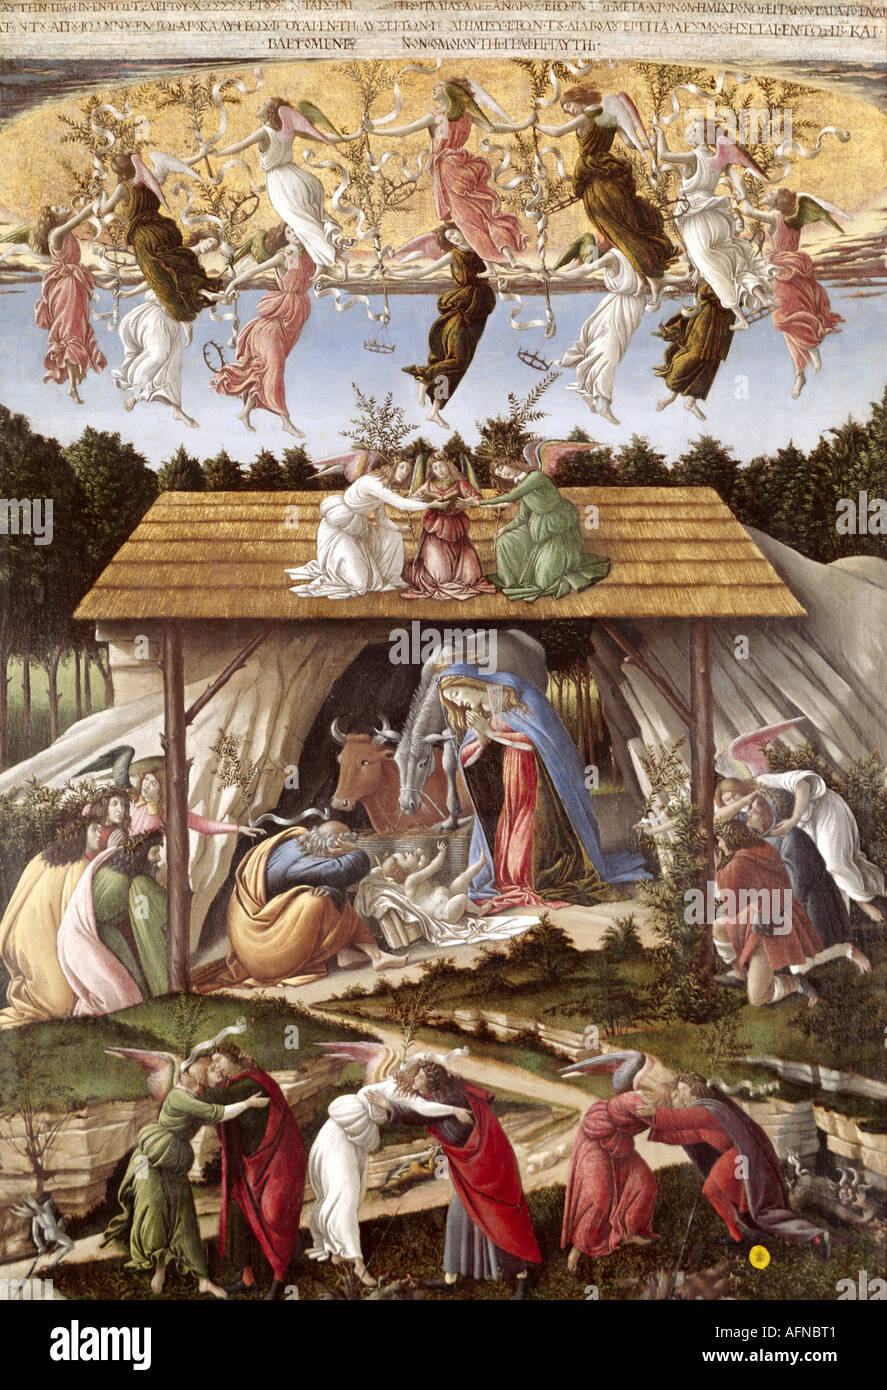 'fine arts, Botticelli, Sandro, (1445 - 1510), painting, 'the mystical nativity', circa 1500, tempera on canvas, 108,5 cm x 75 - Stock Image